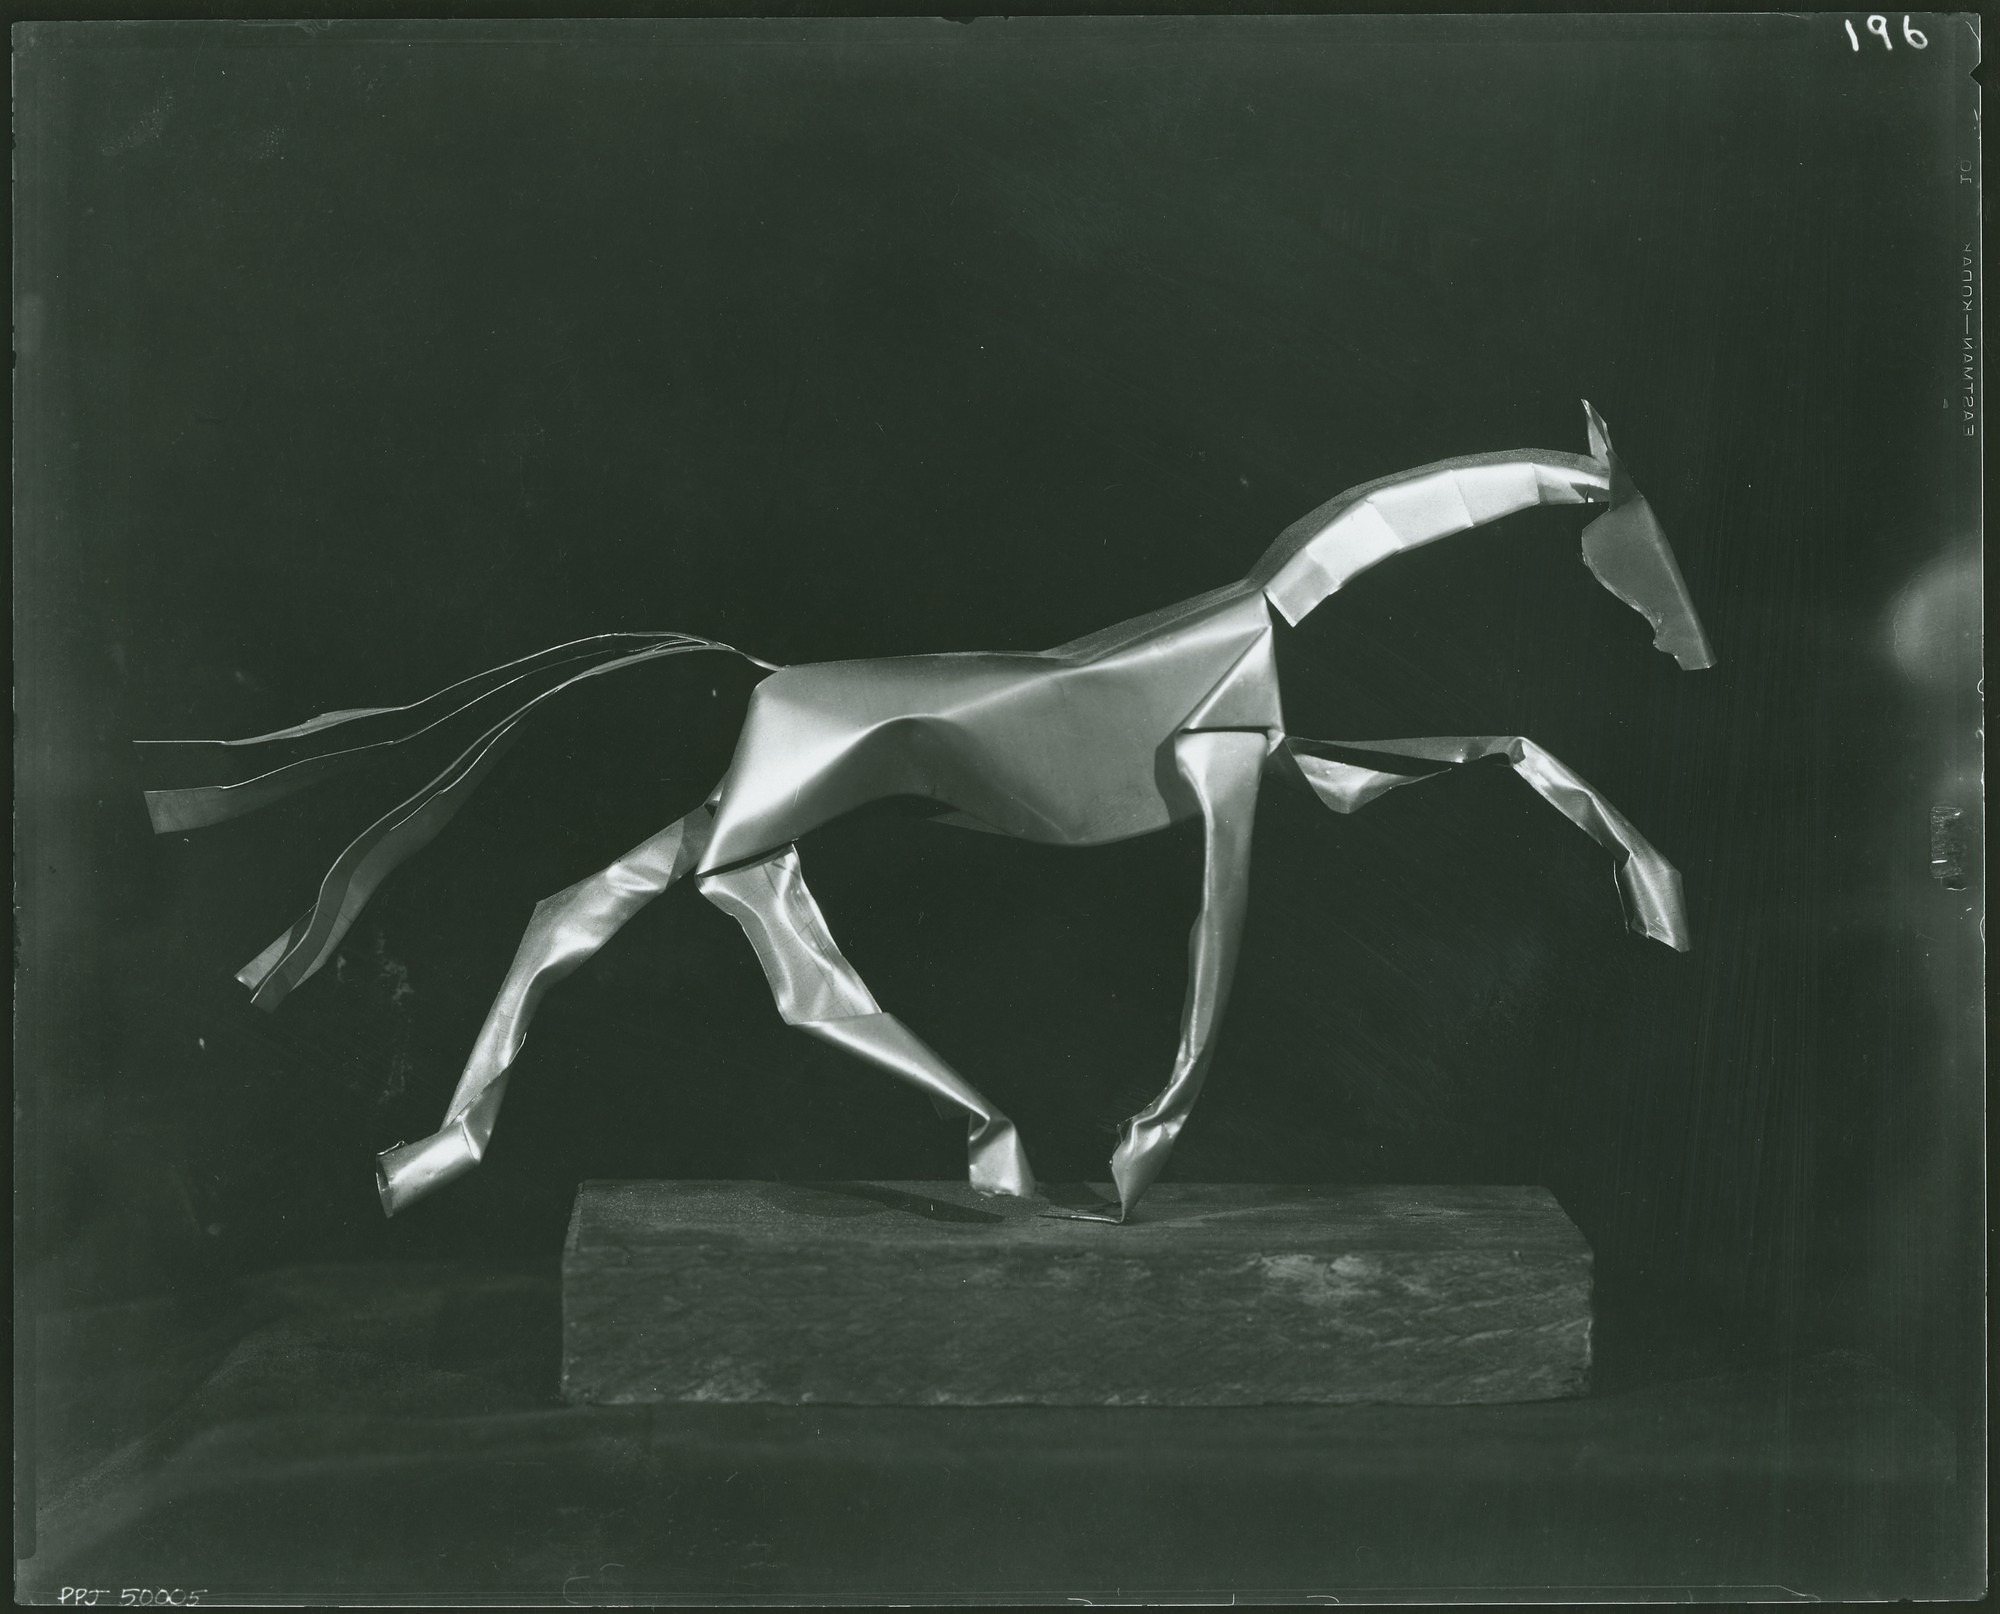 Horse sculpture / (photographed by Peter A. Juley & Son)